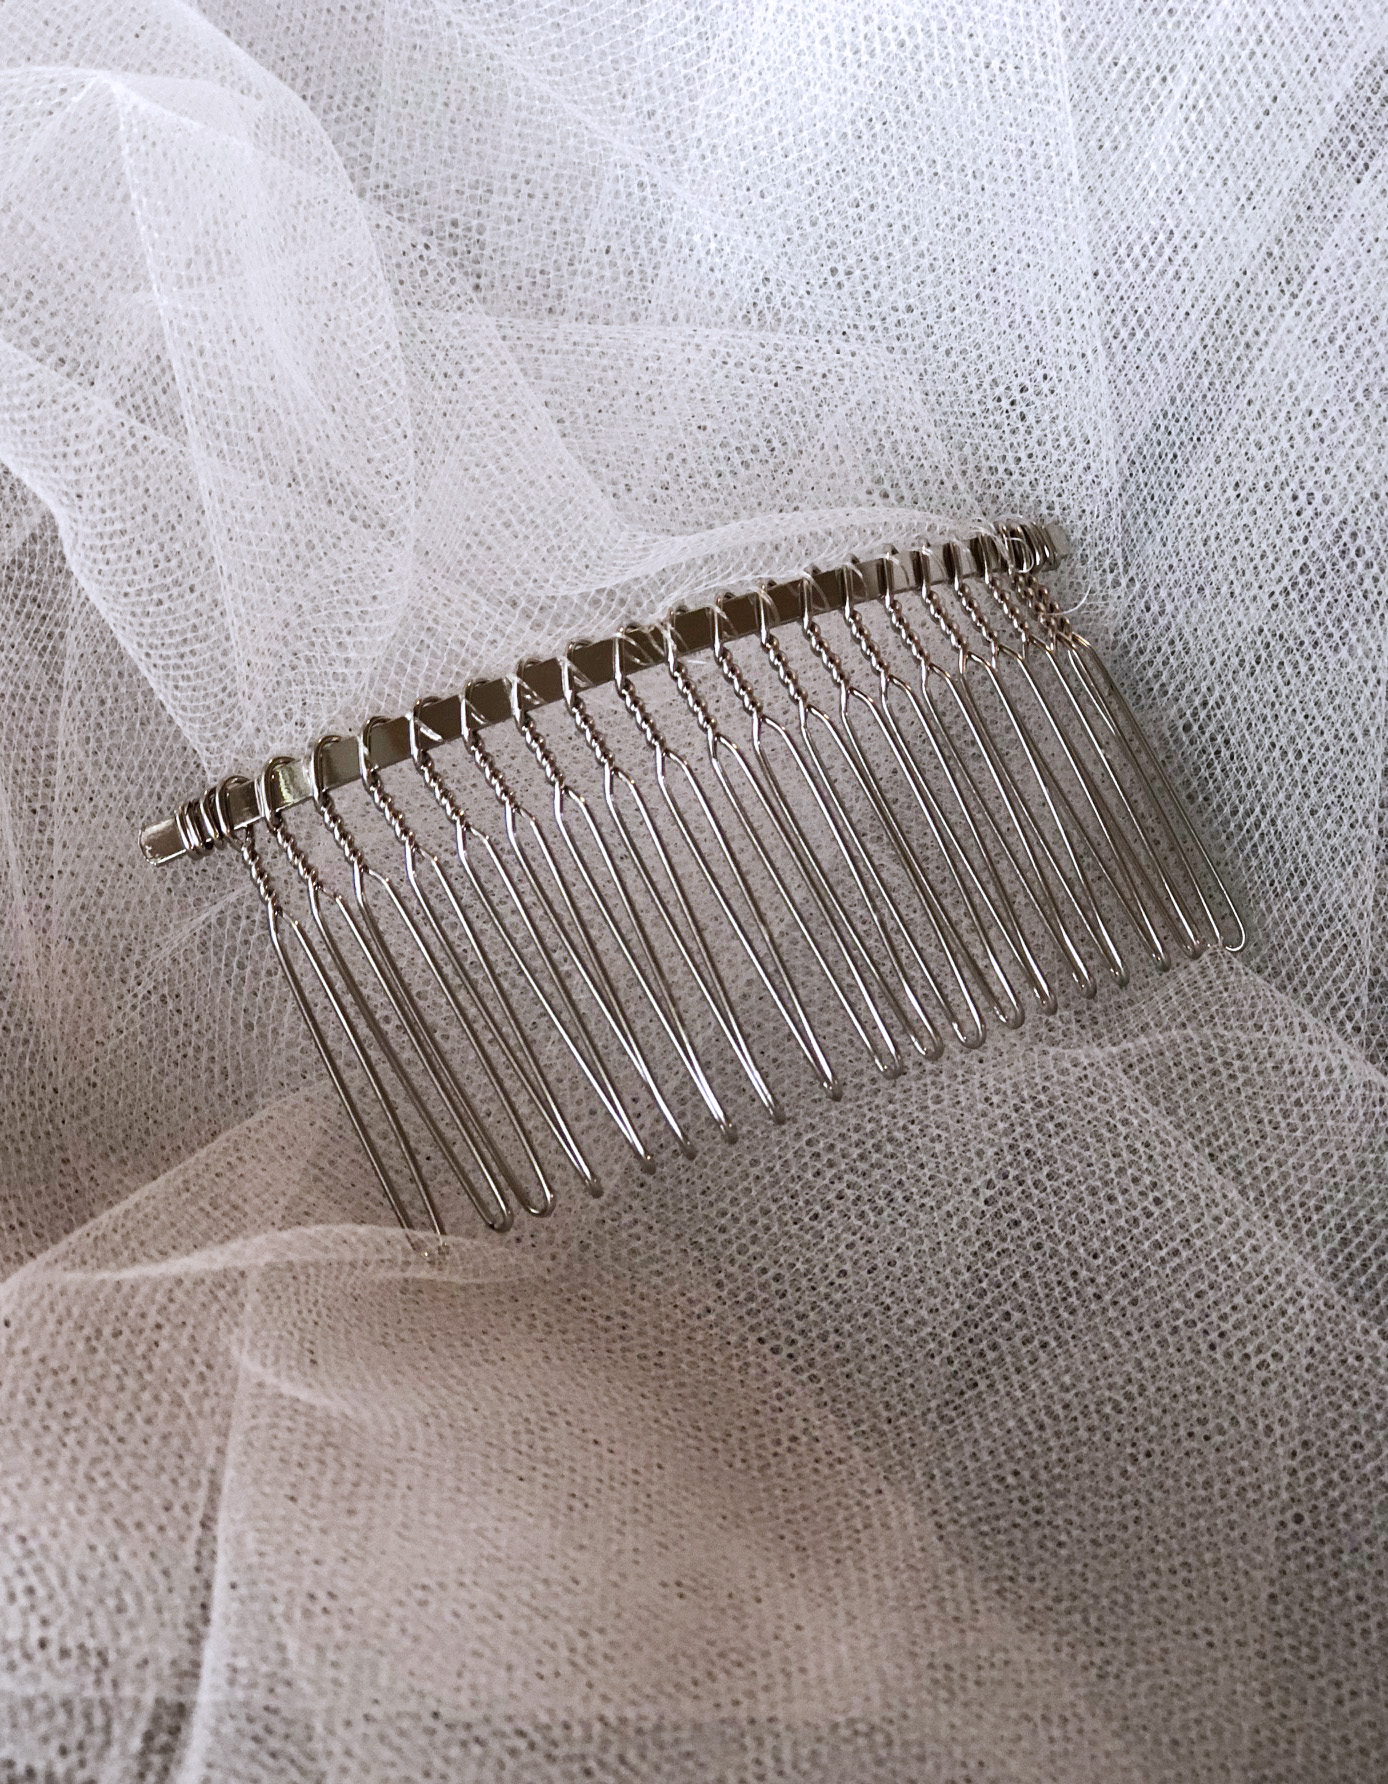 Comb blog feature.jpg